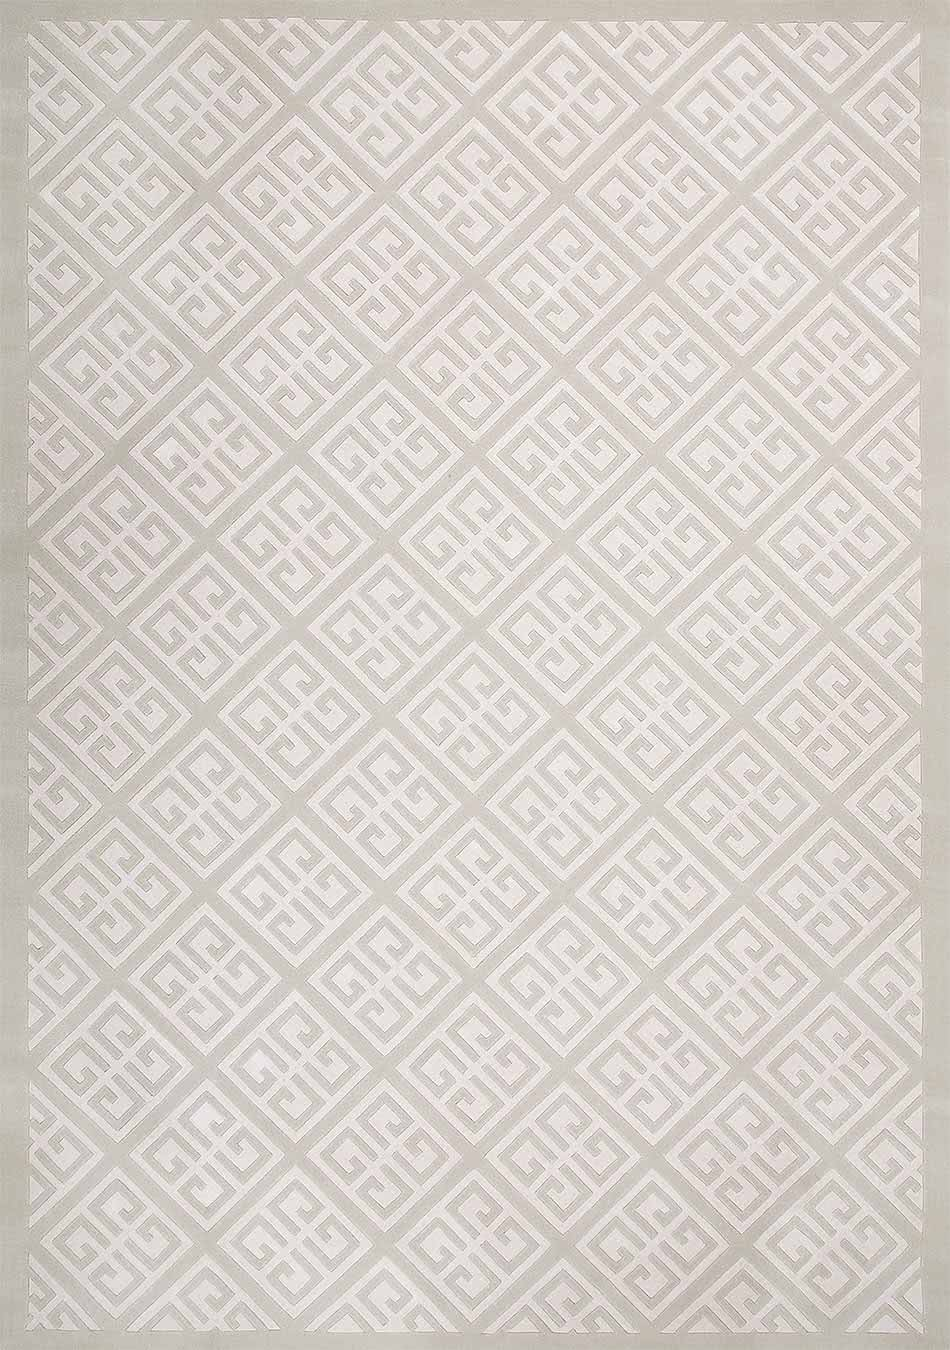 Detailed look at Keylock, a geometric patterned rug in beige and white